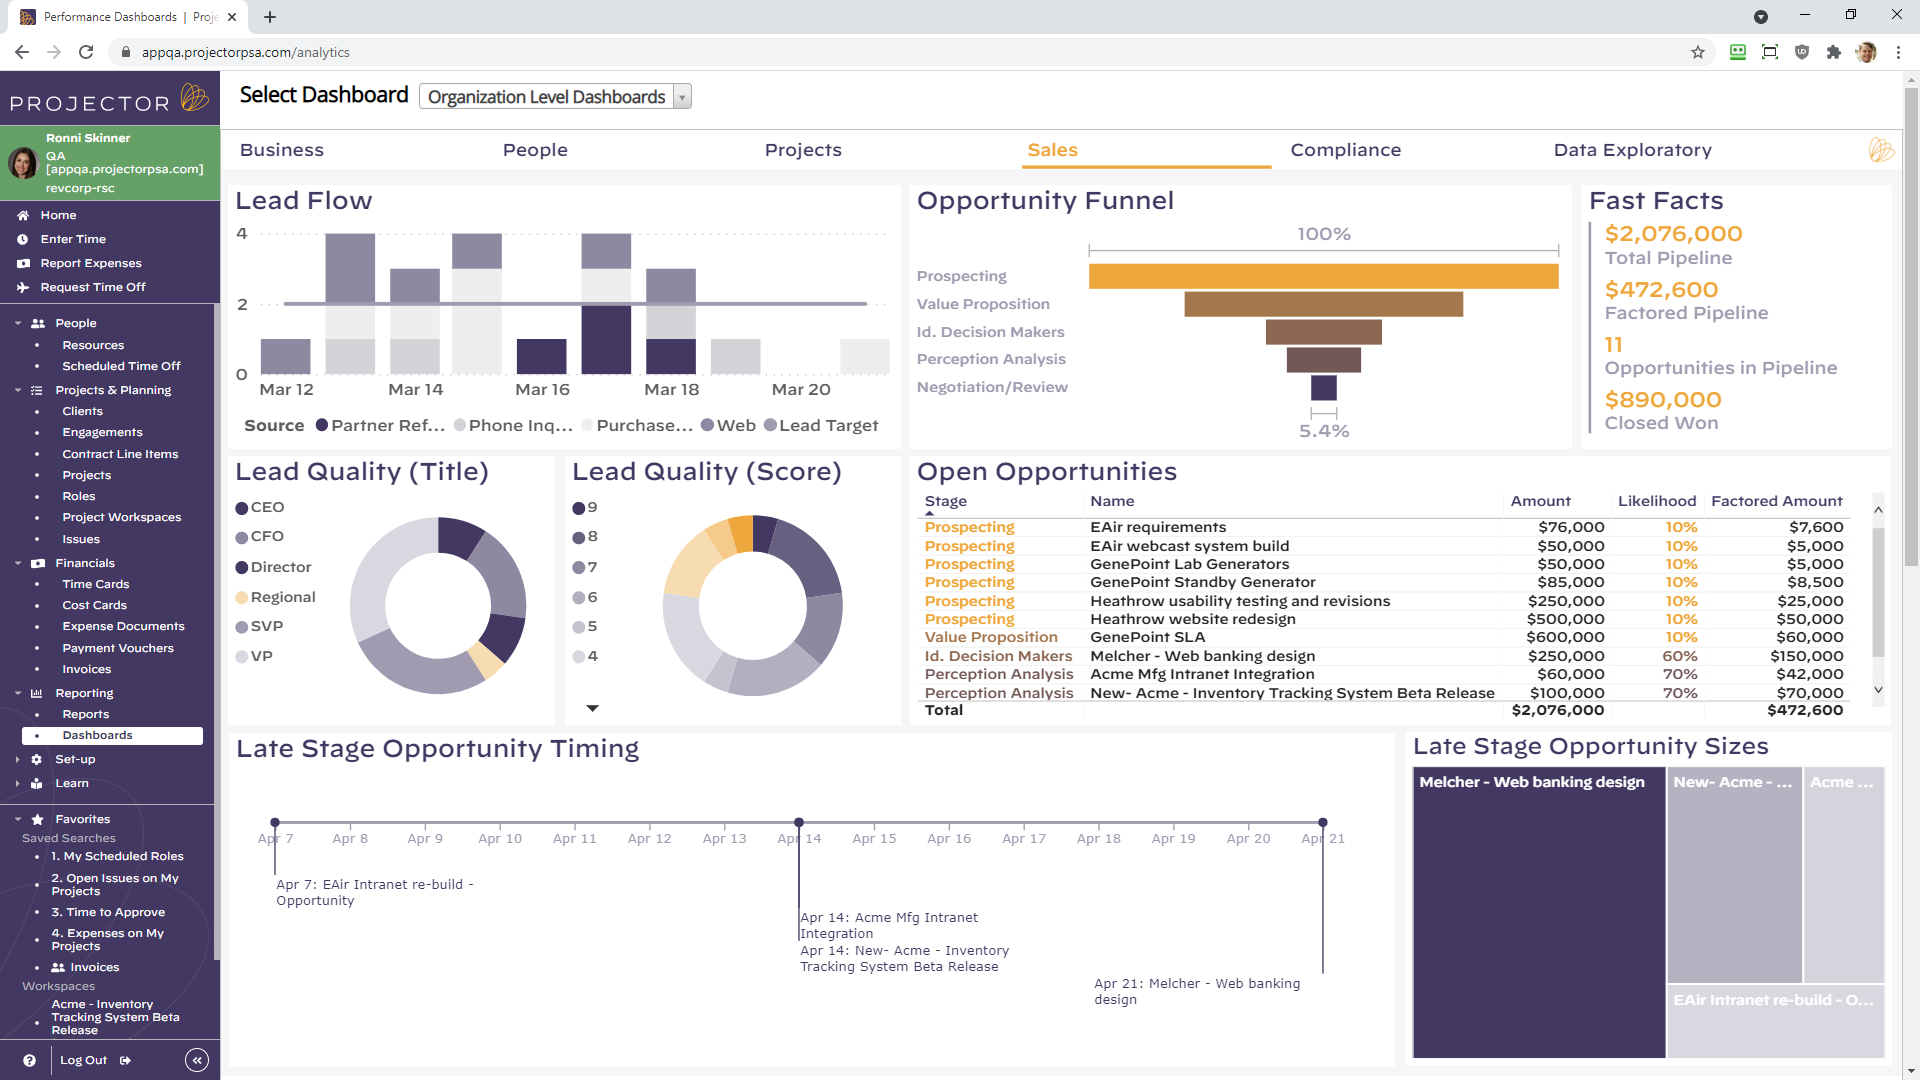 Integrate with your CRM to extend visibility into sales pipeline